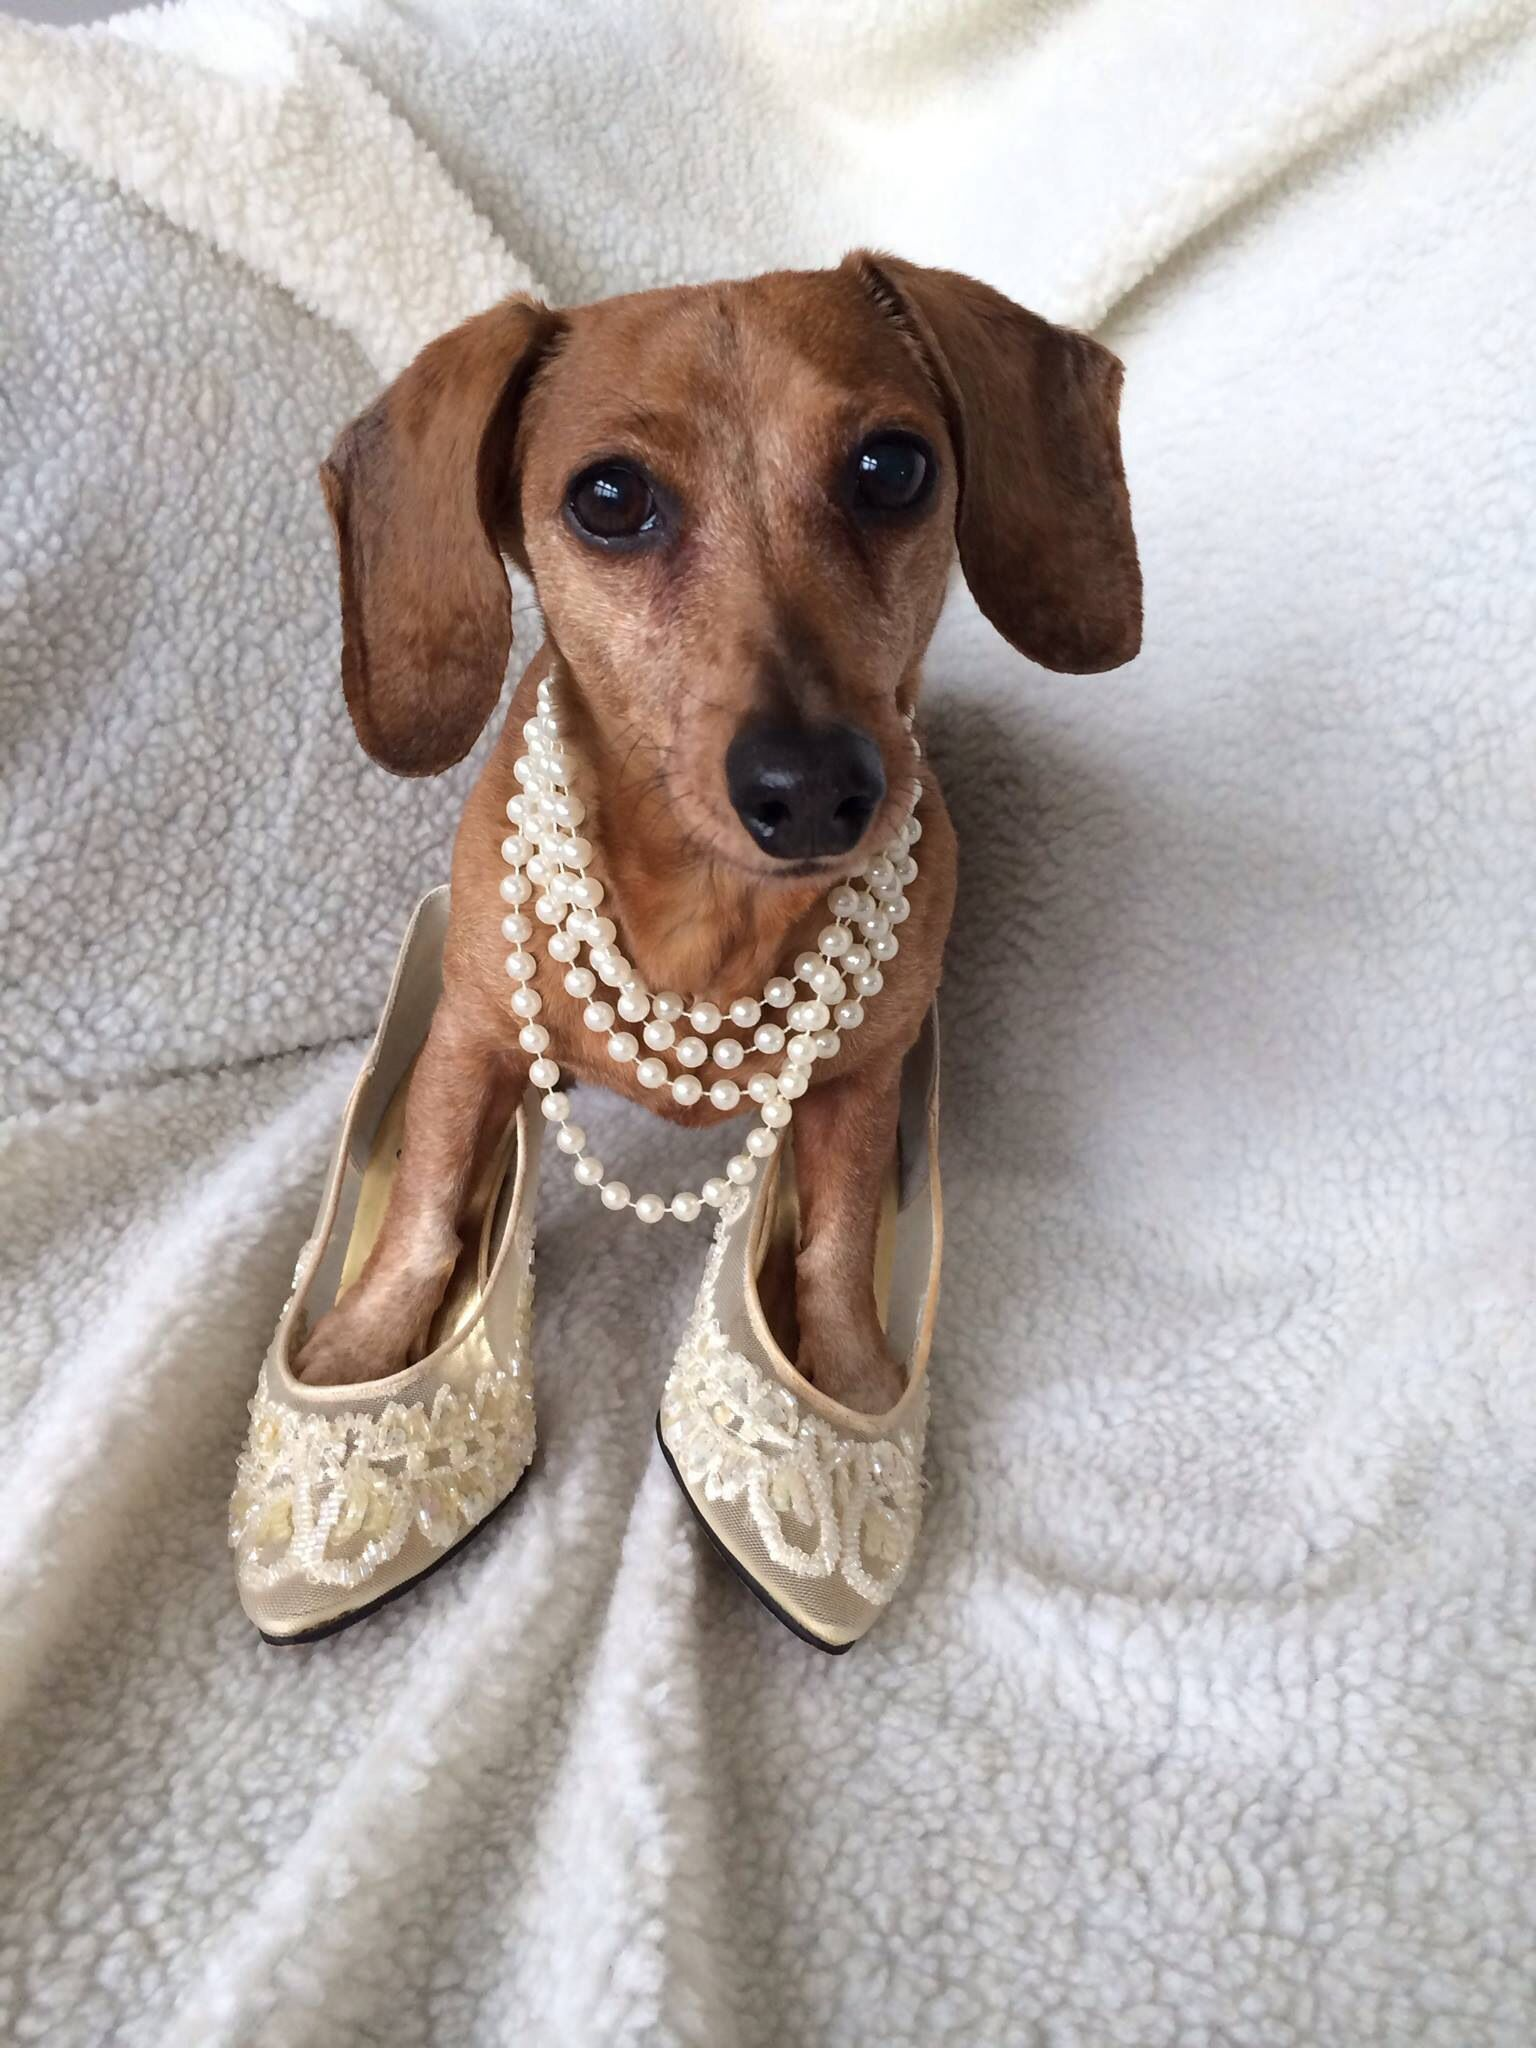 You can never go wrong with pearls!! Dachshund rescue